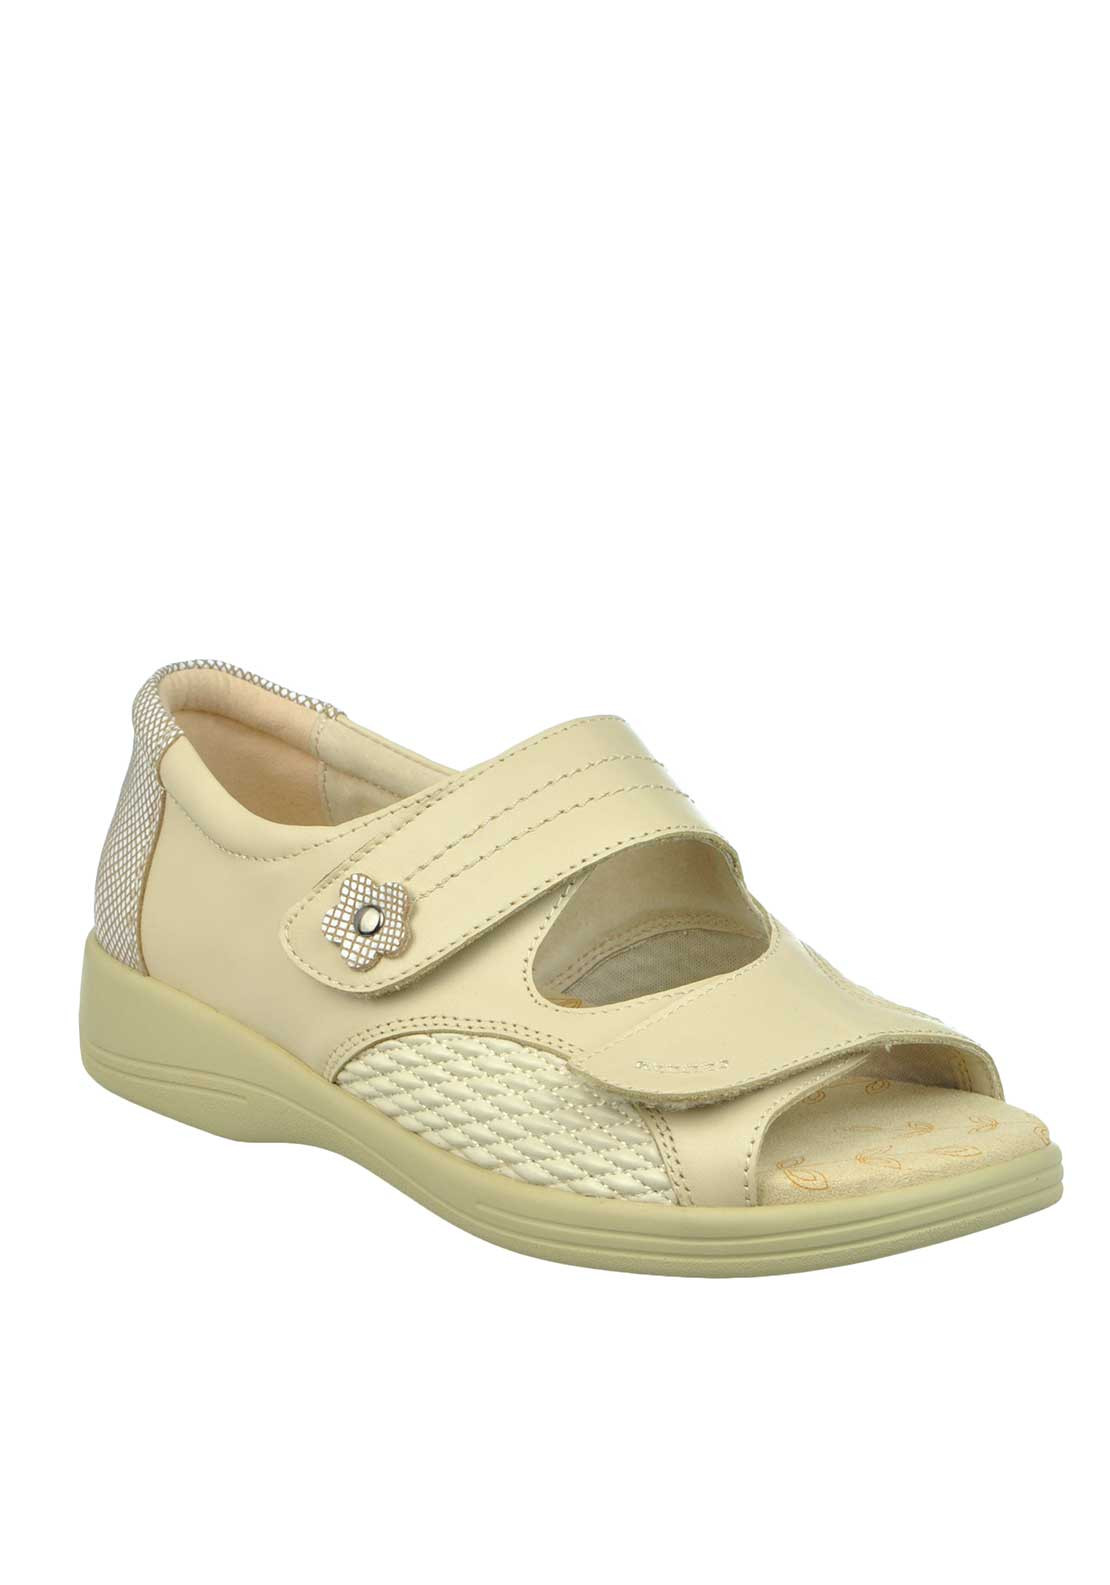 Padders + Grace Velcro Strap Sandals, Oyster